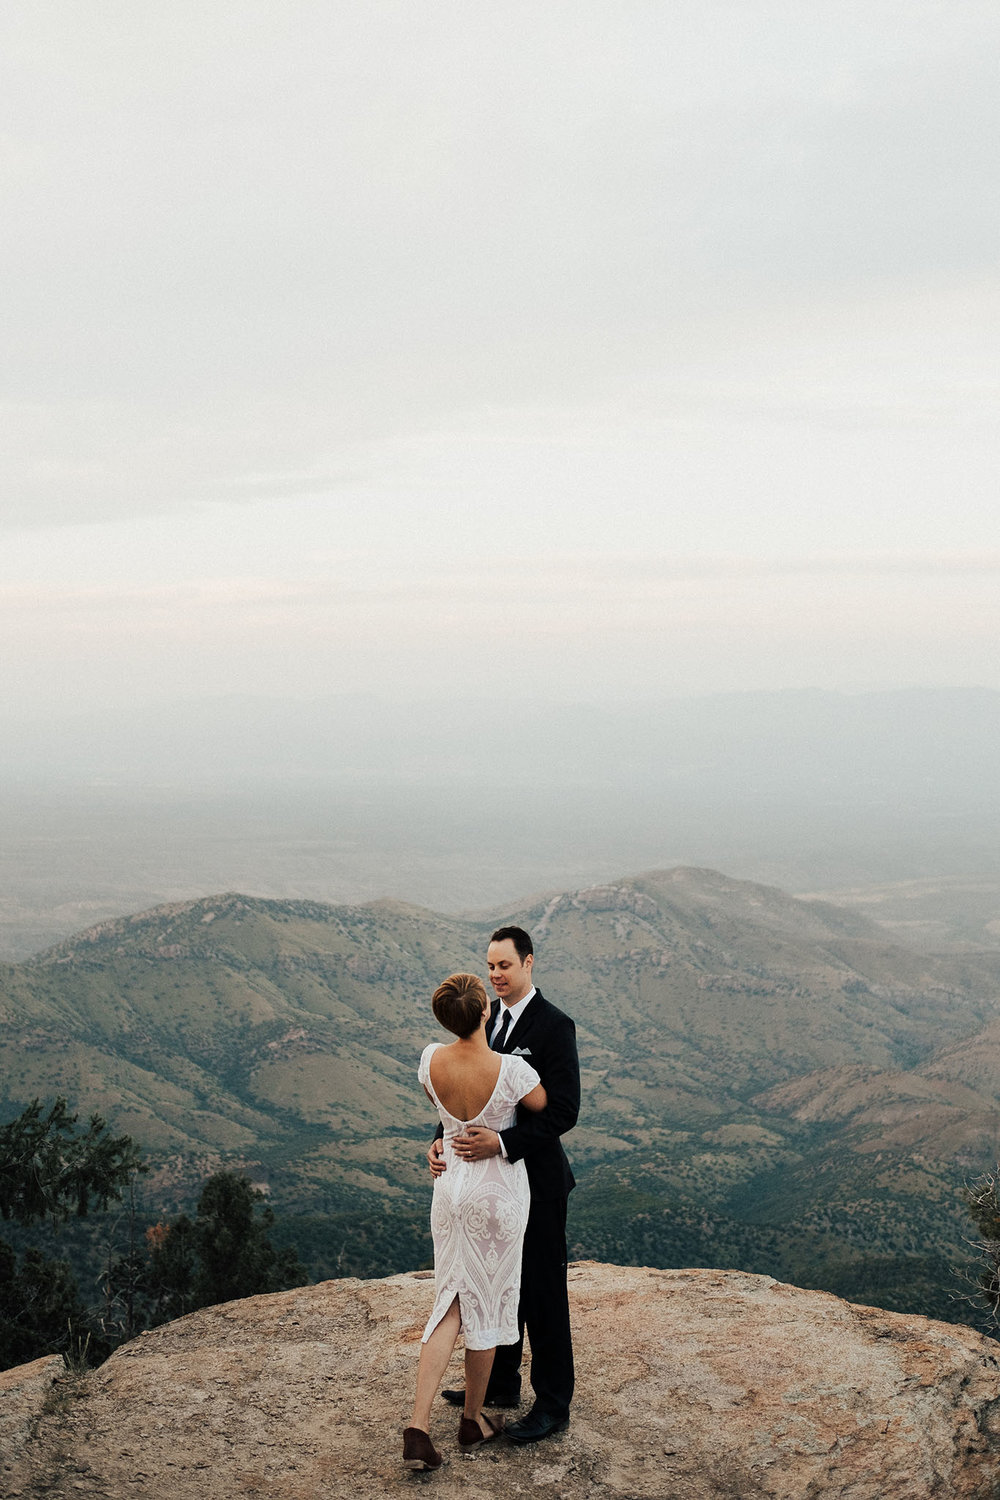 Arizona-Intimate-Elopement-Adventure-Photographer-Mount-Lemmon (35).jpg